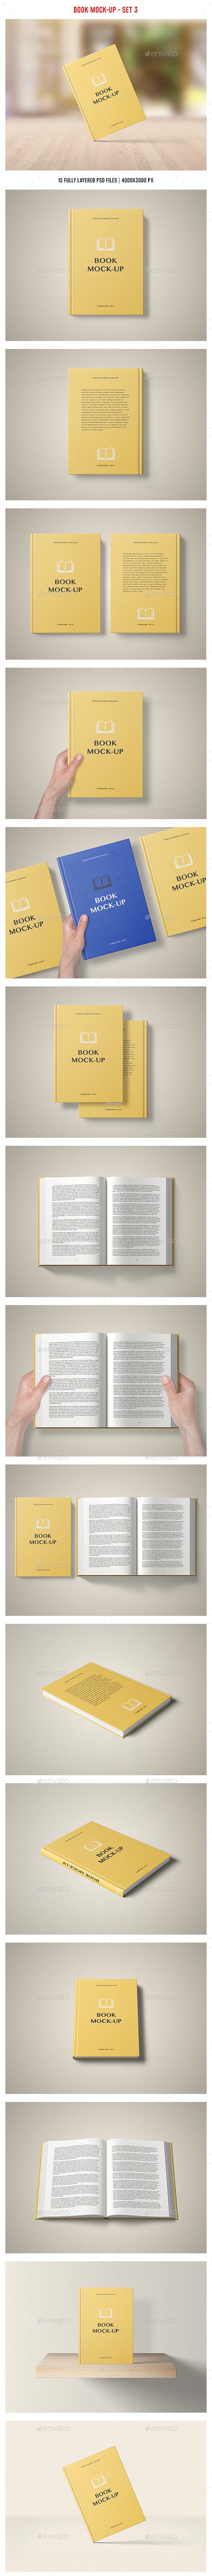 Book Mockup - Set 3 - Books Print